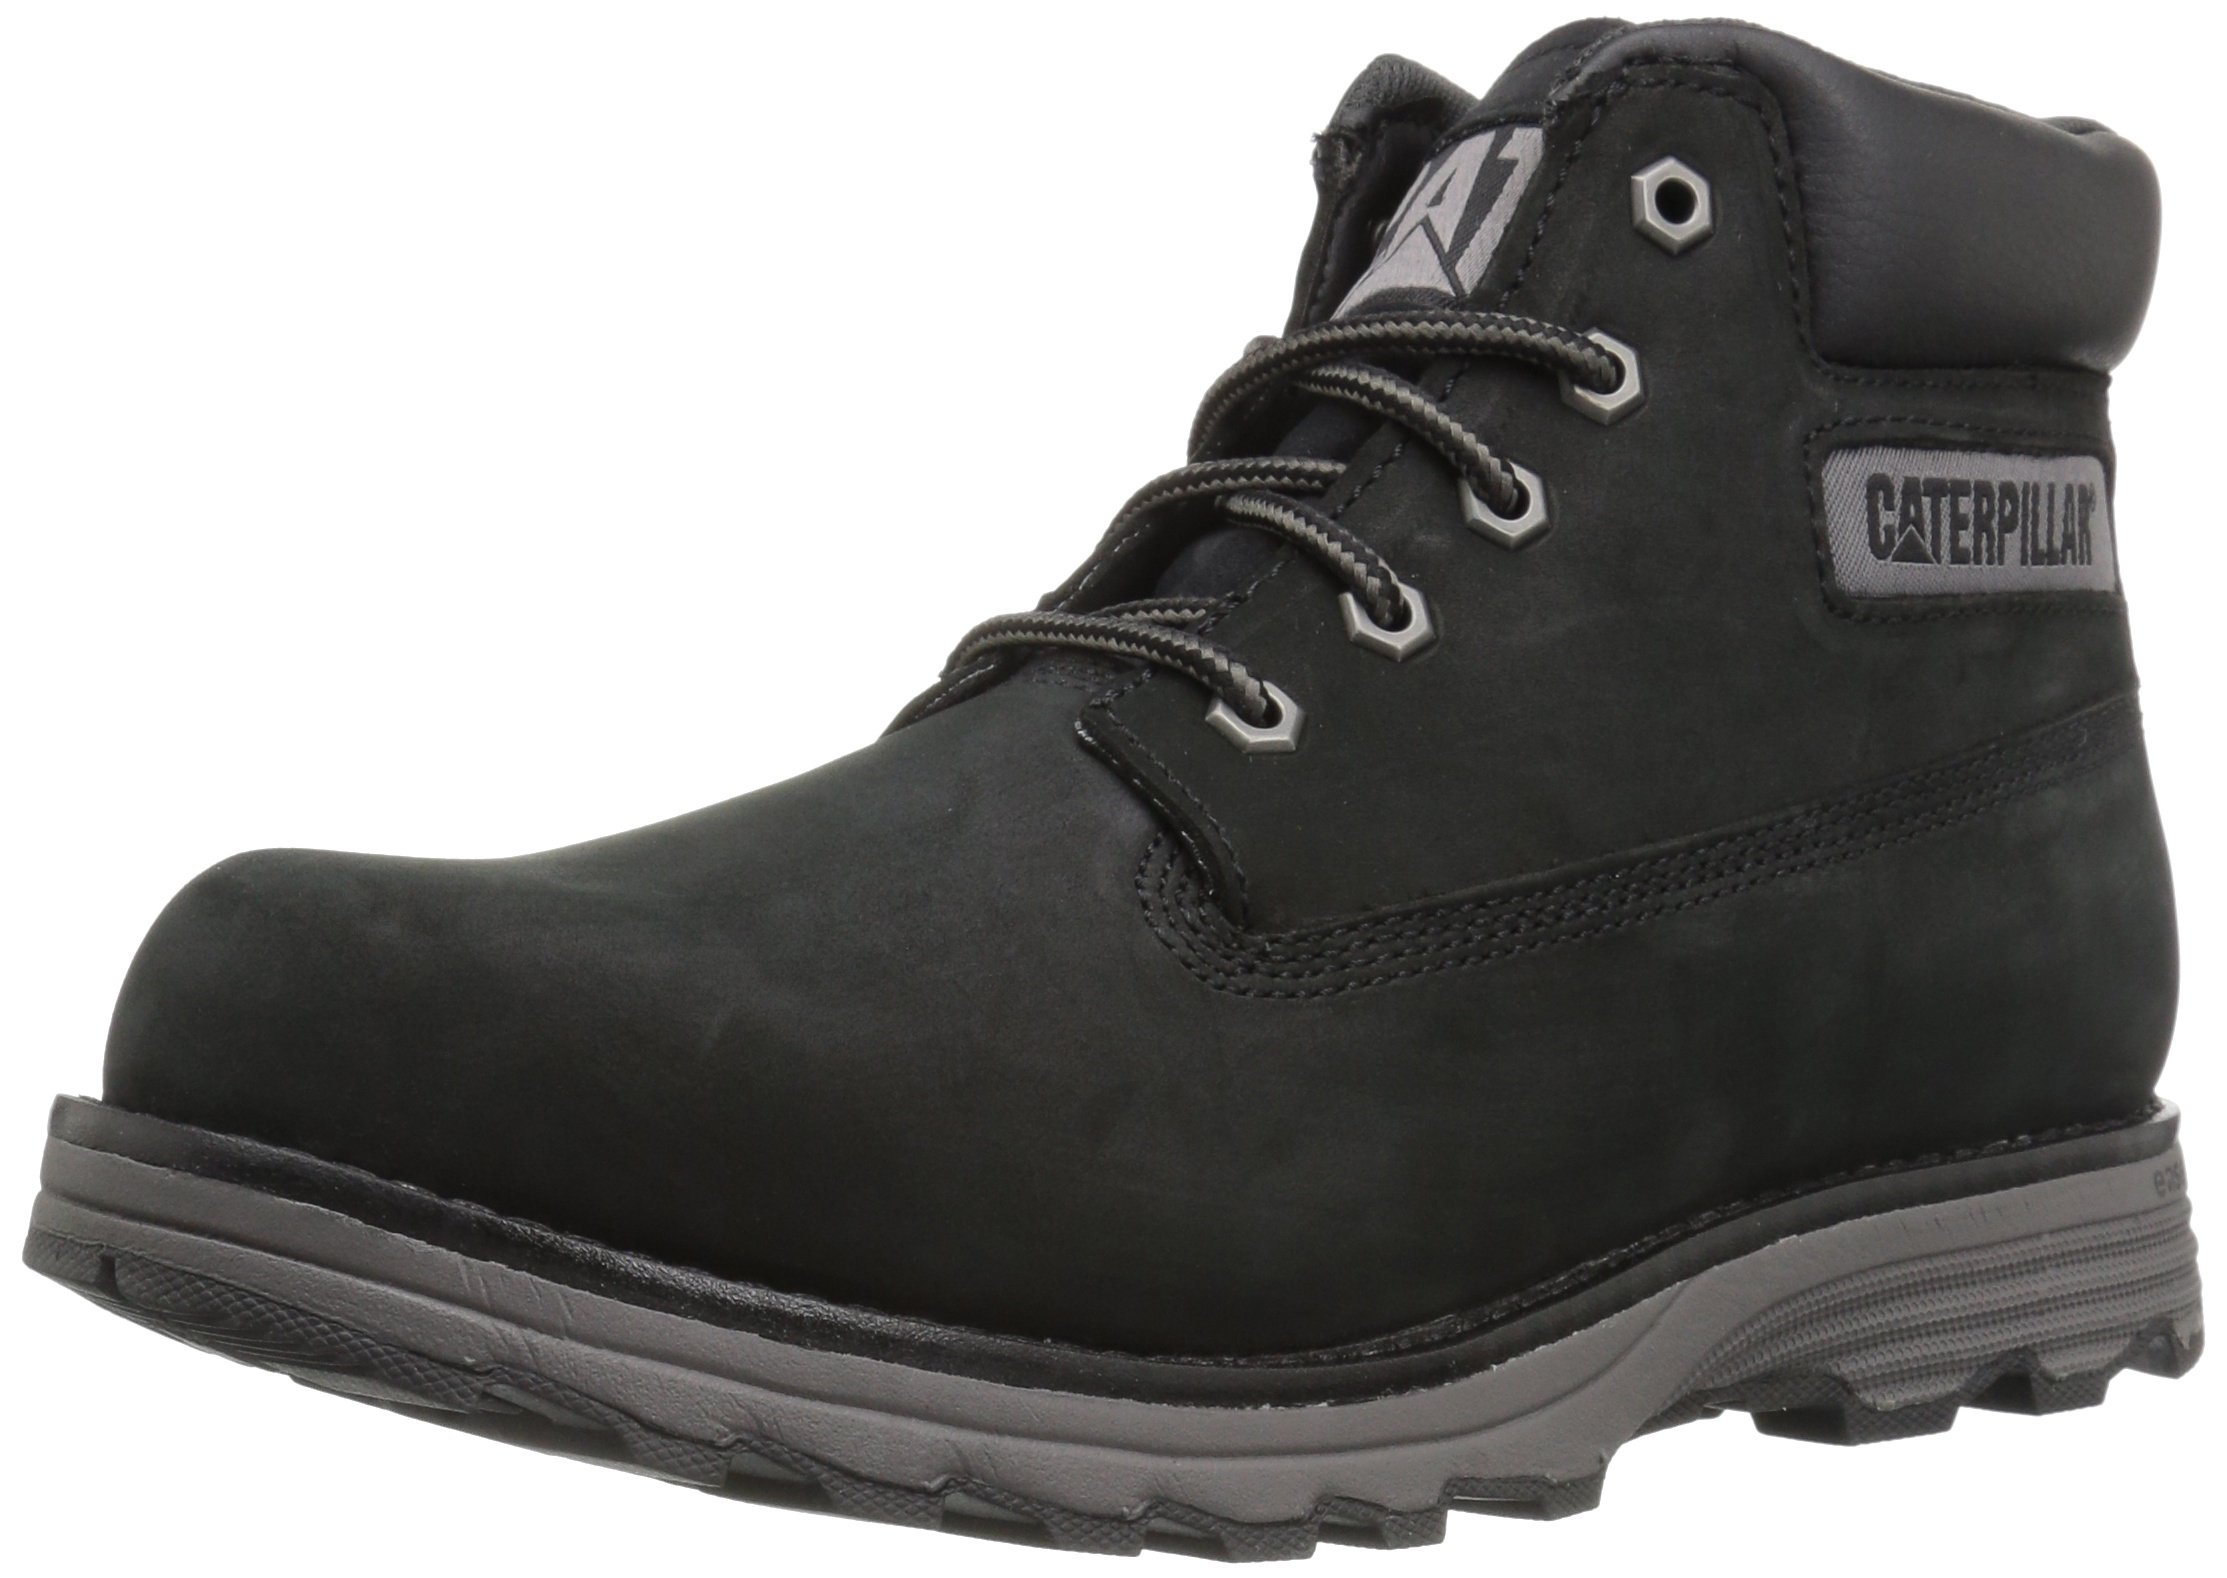 Caterpillar Men's Founder Backpacking Boot, Black, 13 M US by Caterpillar